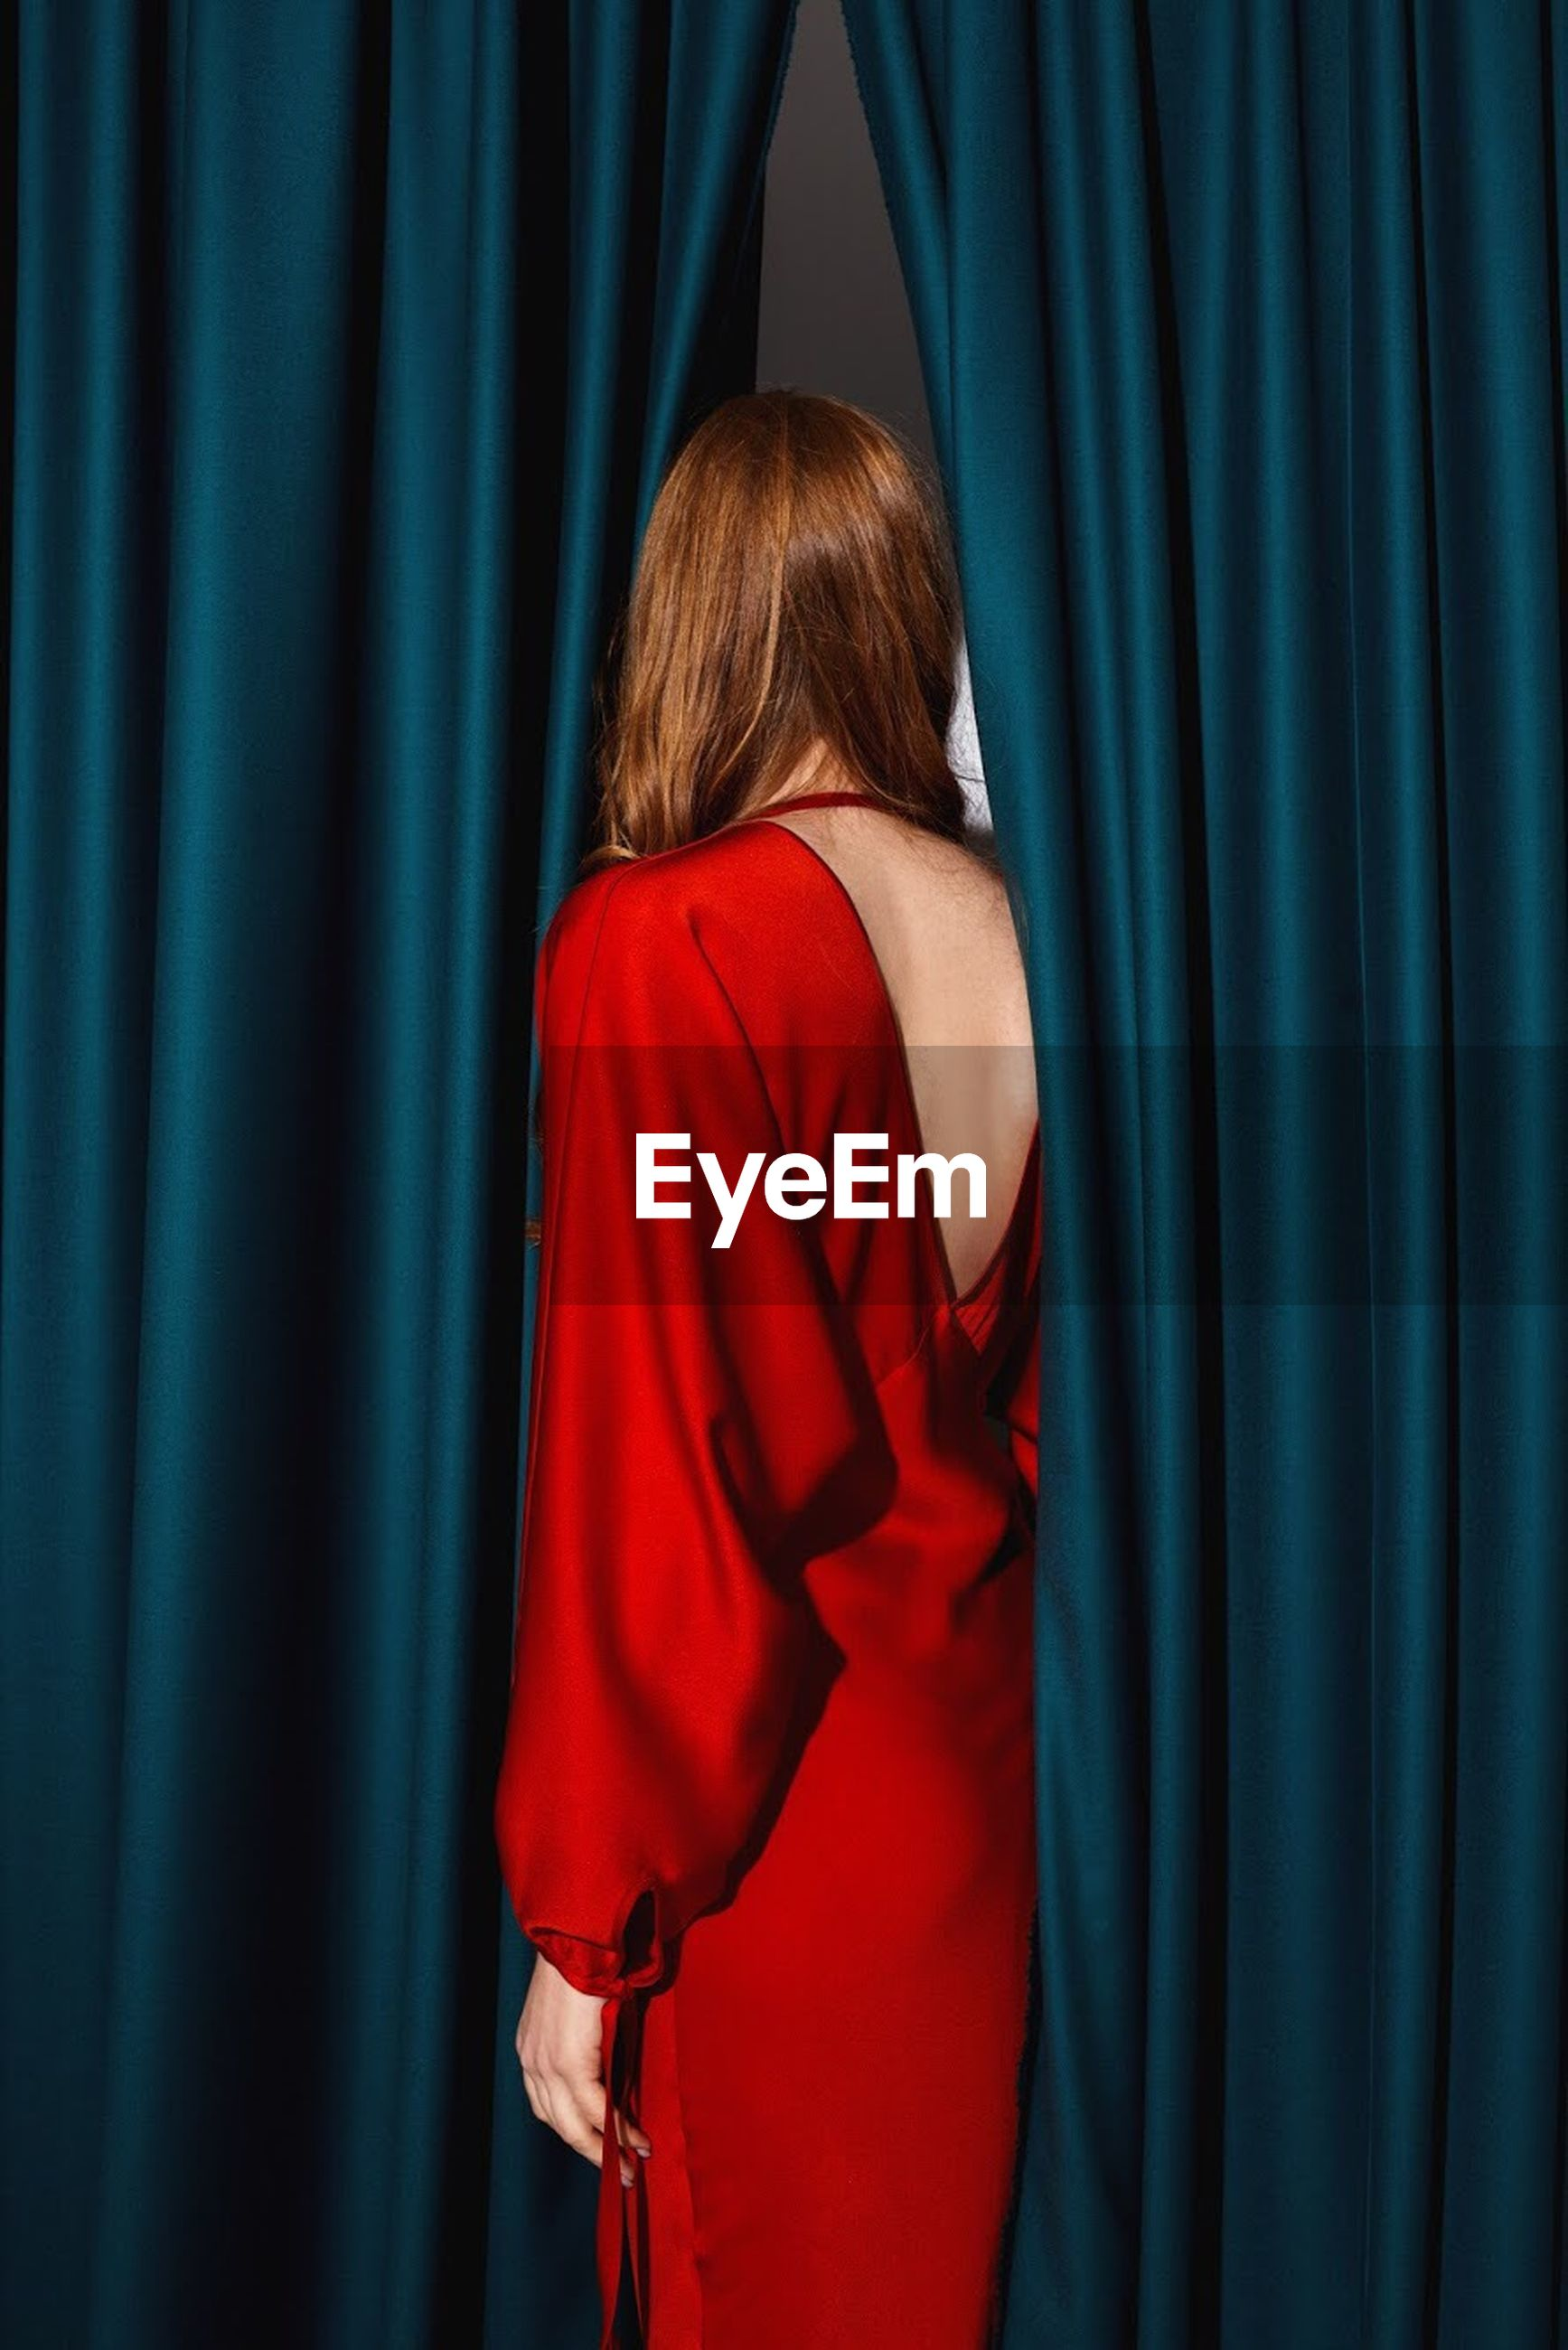 curtain, rear view, indoors, one person, stage, blue, adult, stage - performance space, women, red, standing, waist up, performance, peeking, hiding, casual clothing, arts culture and entertainment, textile, hairstyle